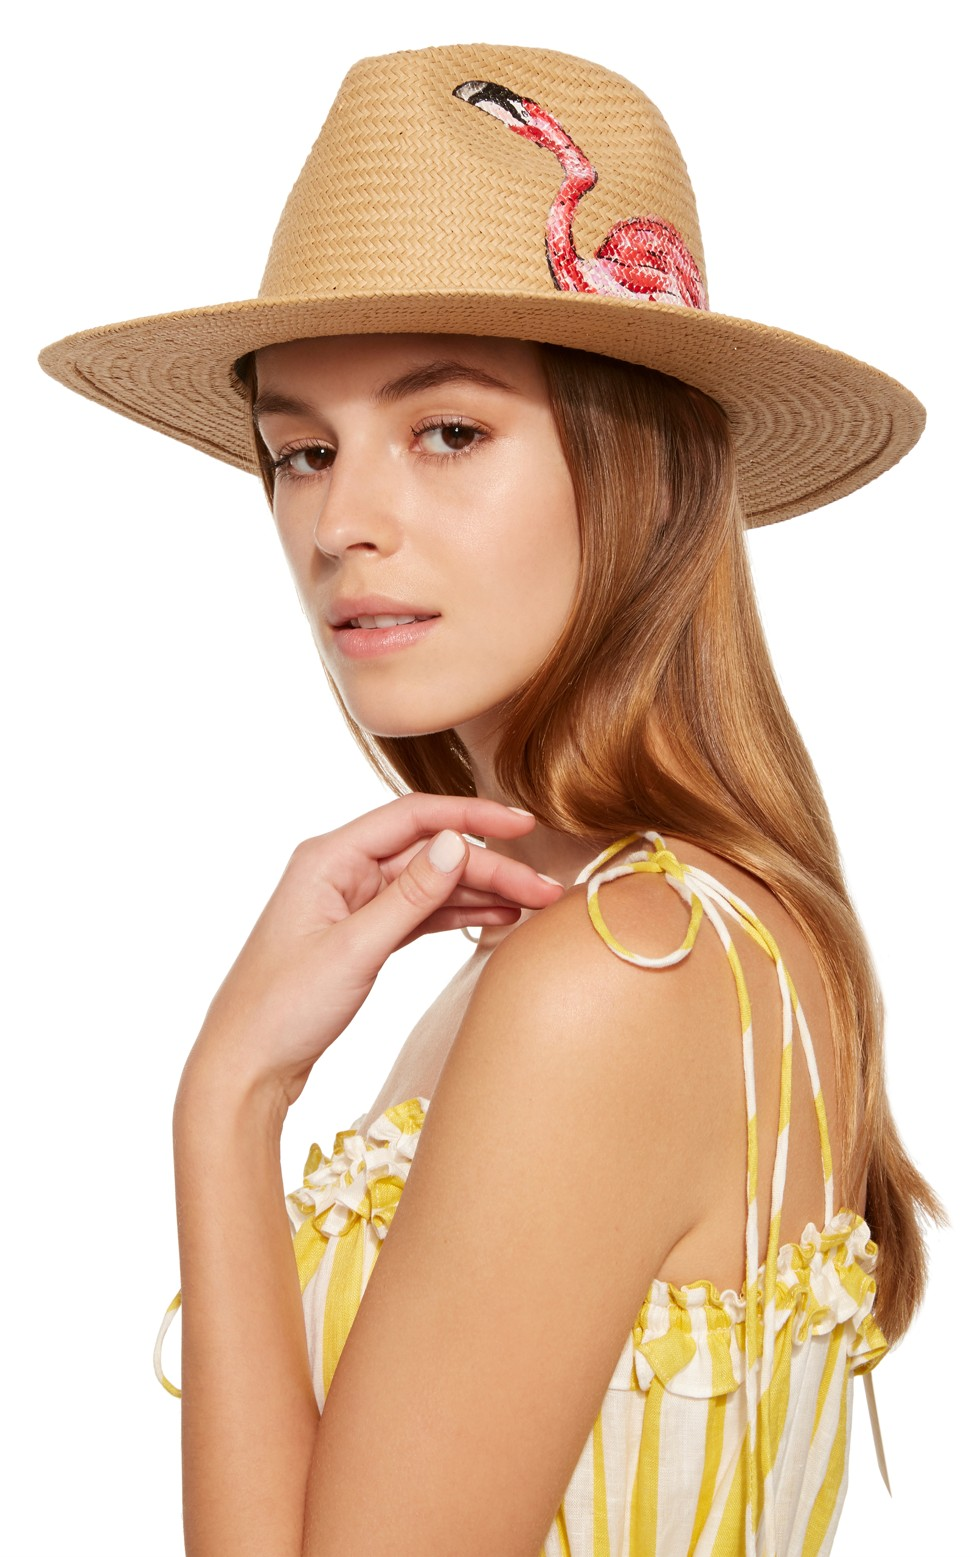 ad86f55d2309a The rules to wearing a summer hat and five brands to check out before your  2018 holiday